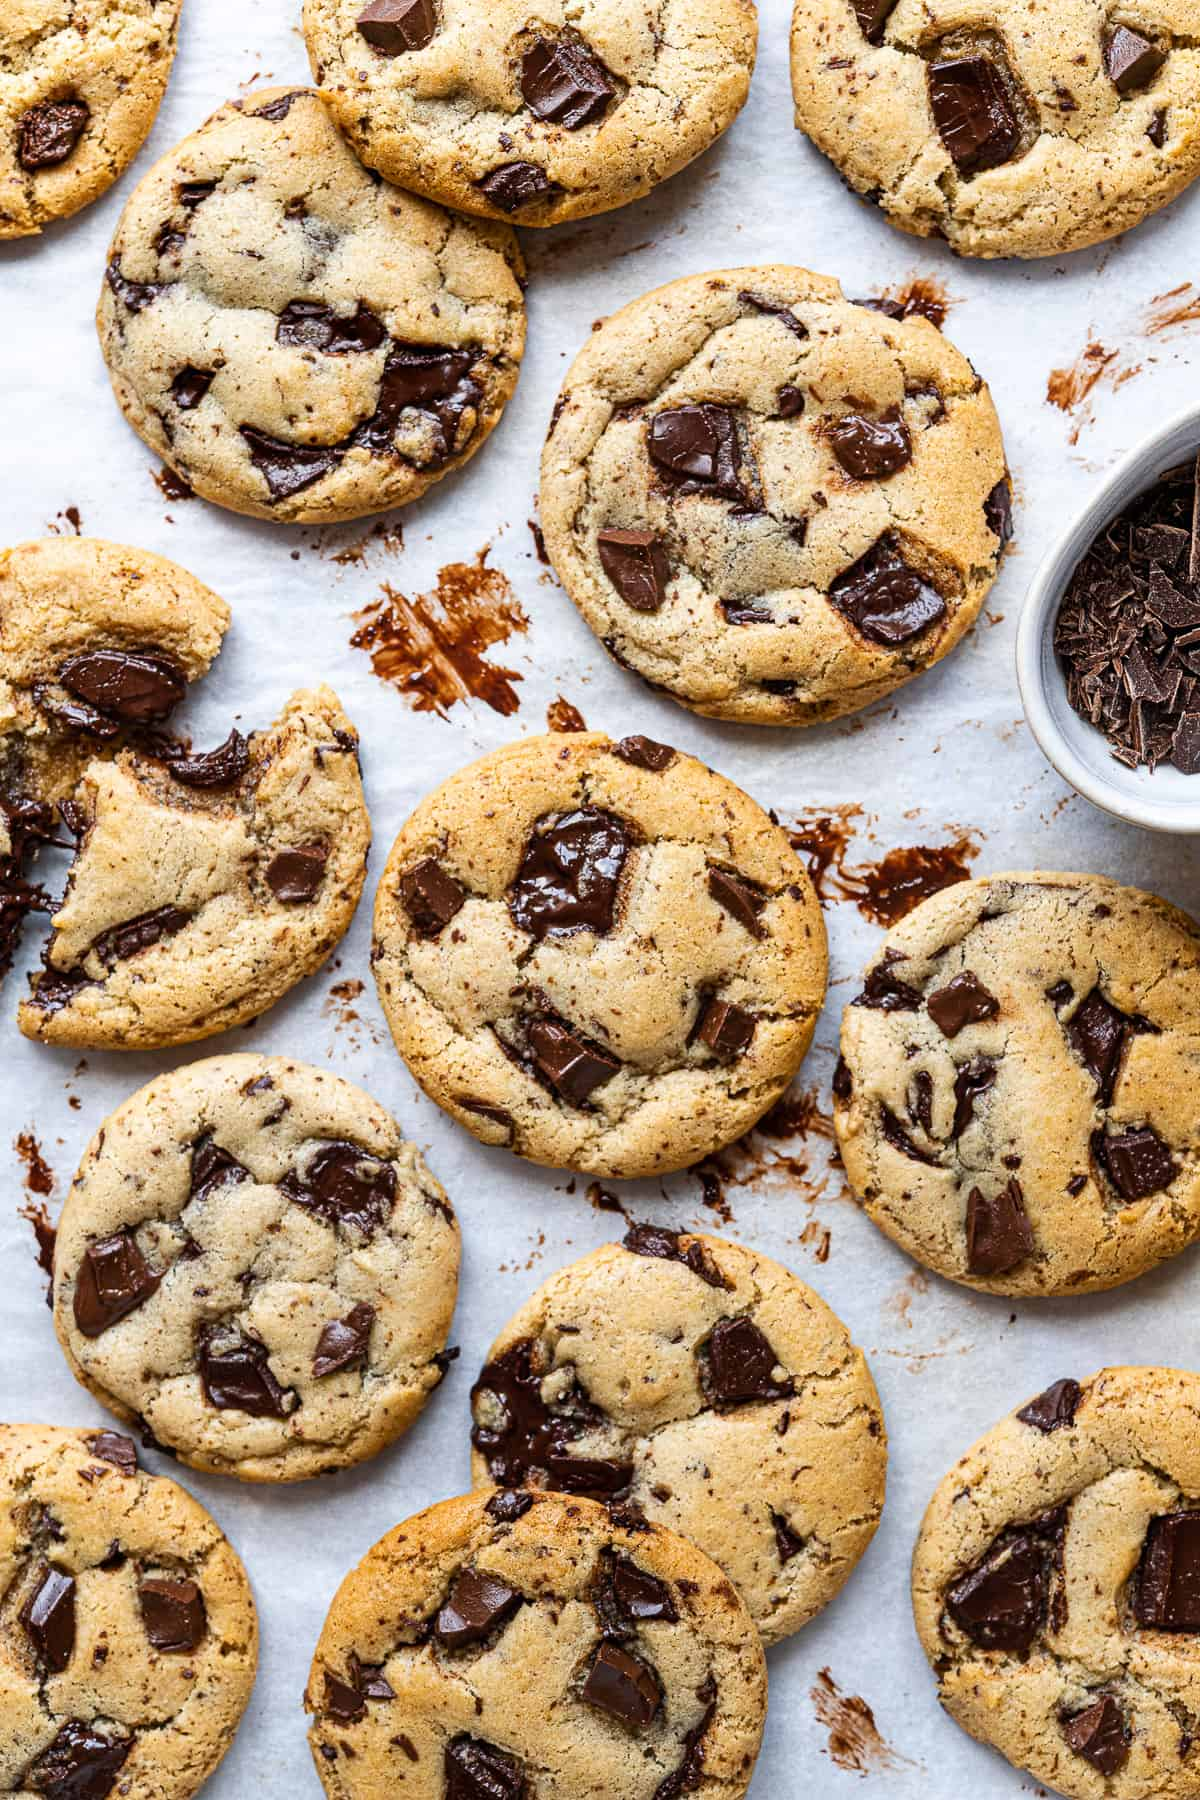 Olive oil chocolate chip cookies on a sheet of white baking parchment.